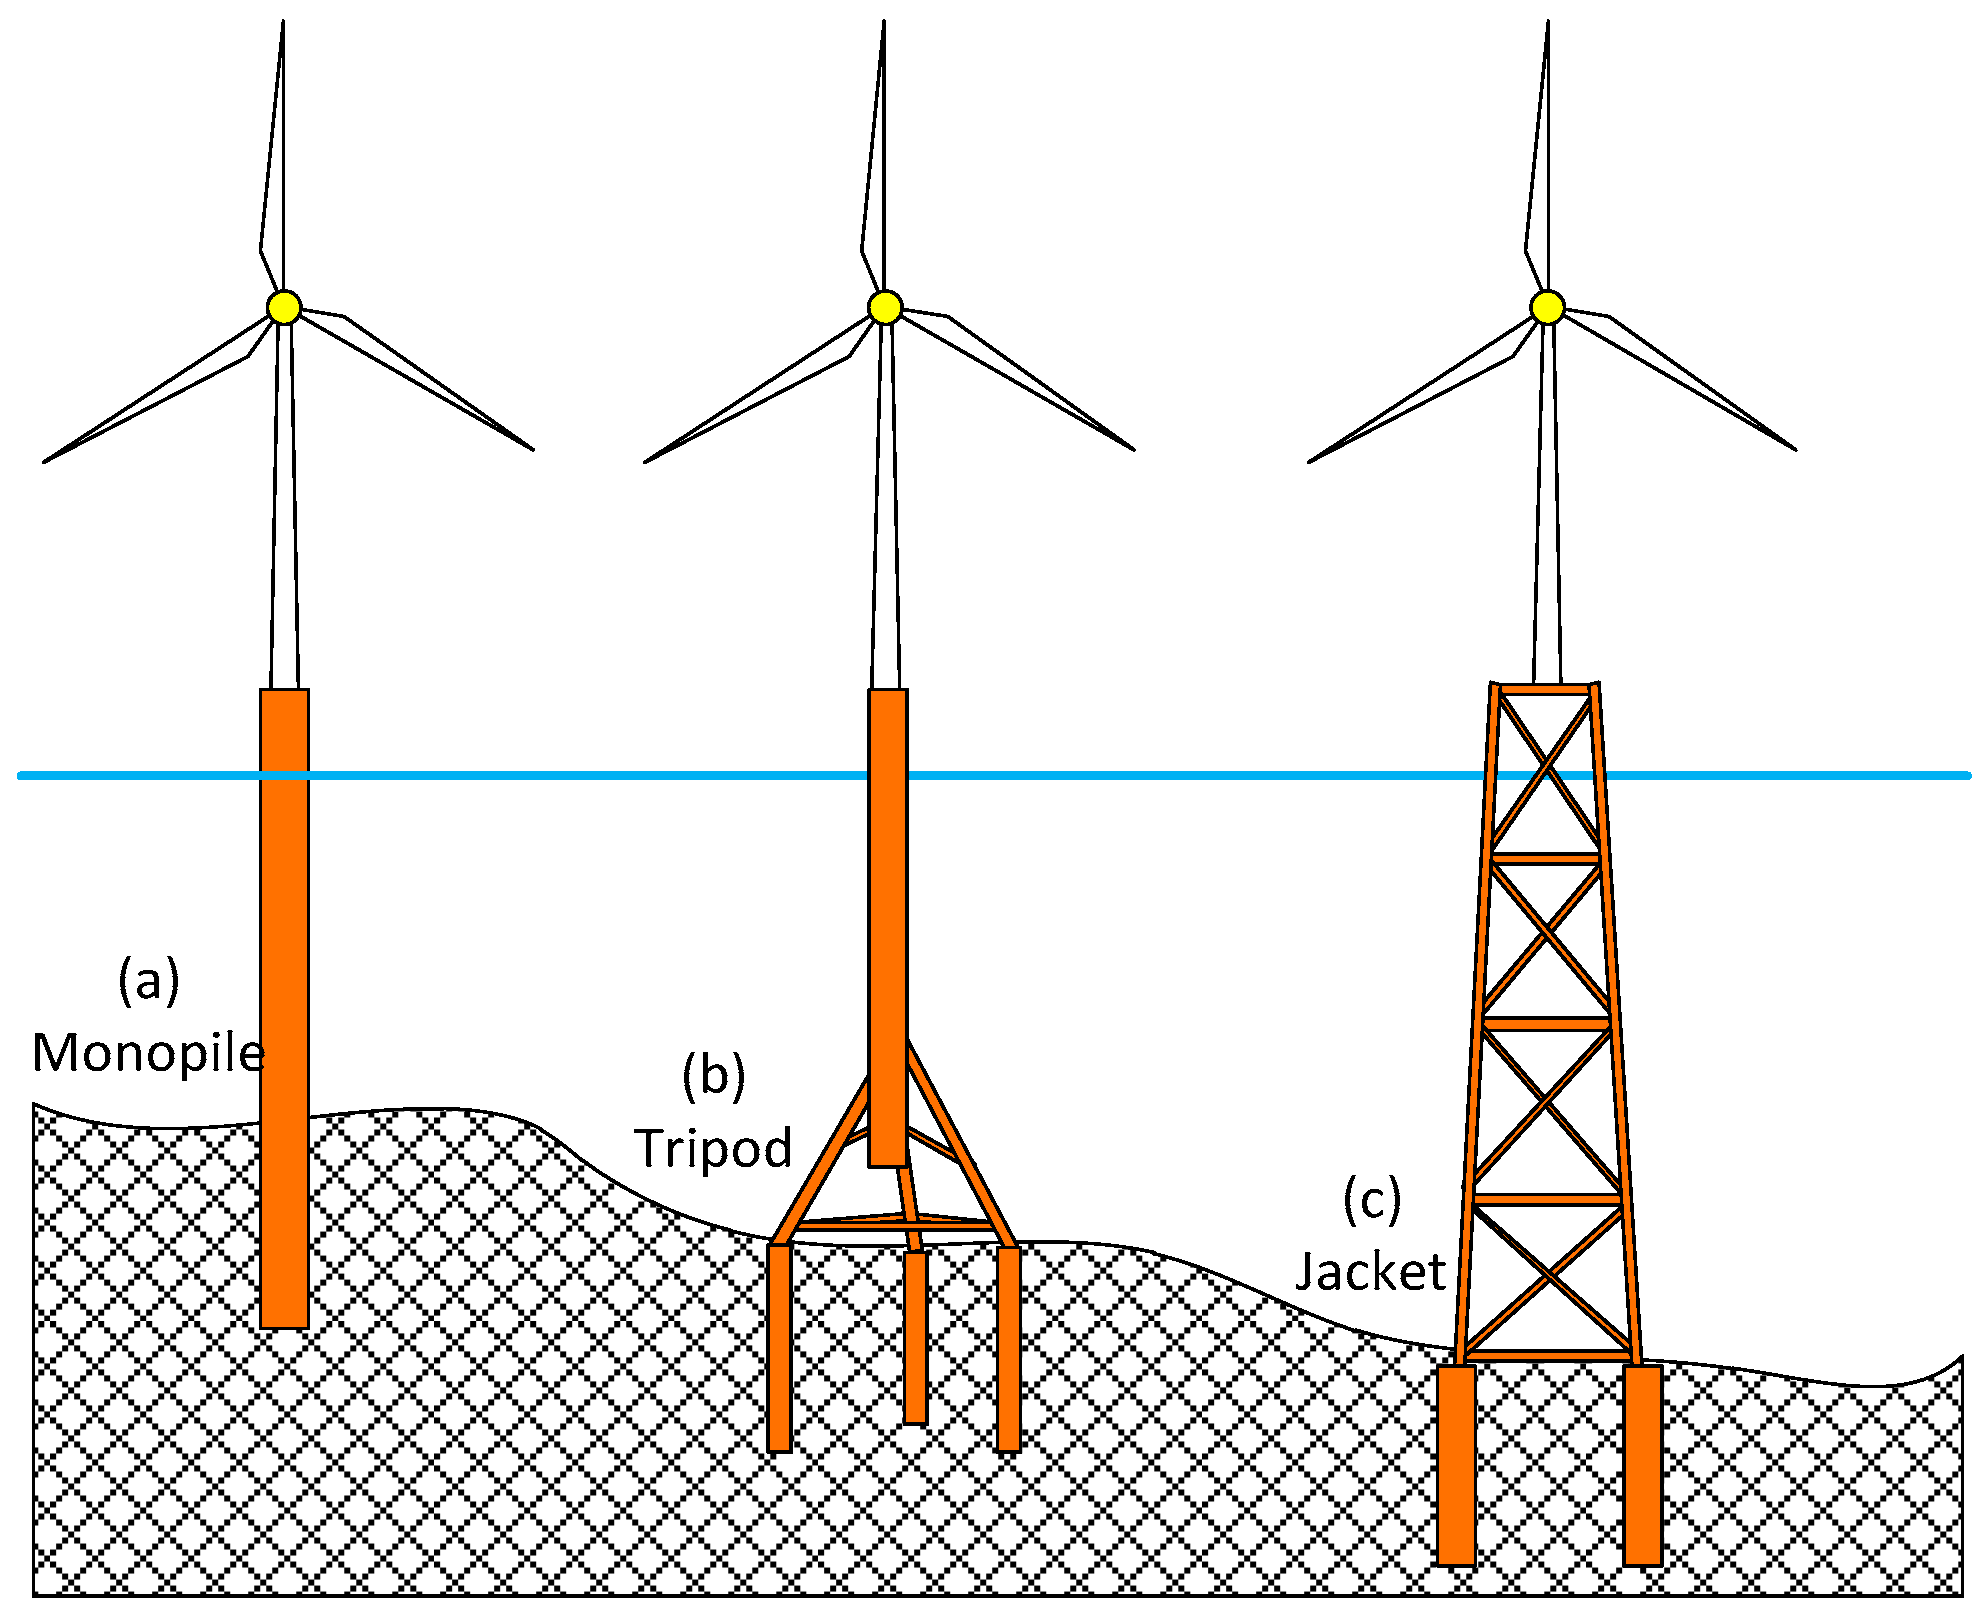 JMSE | Free Full-Text | Tripod-Supported Offshore Wind Turbines